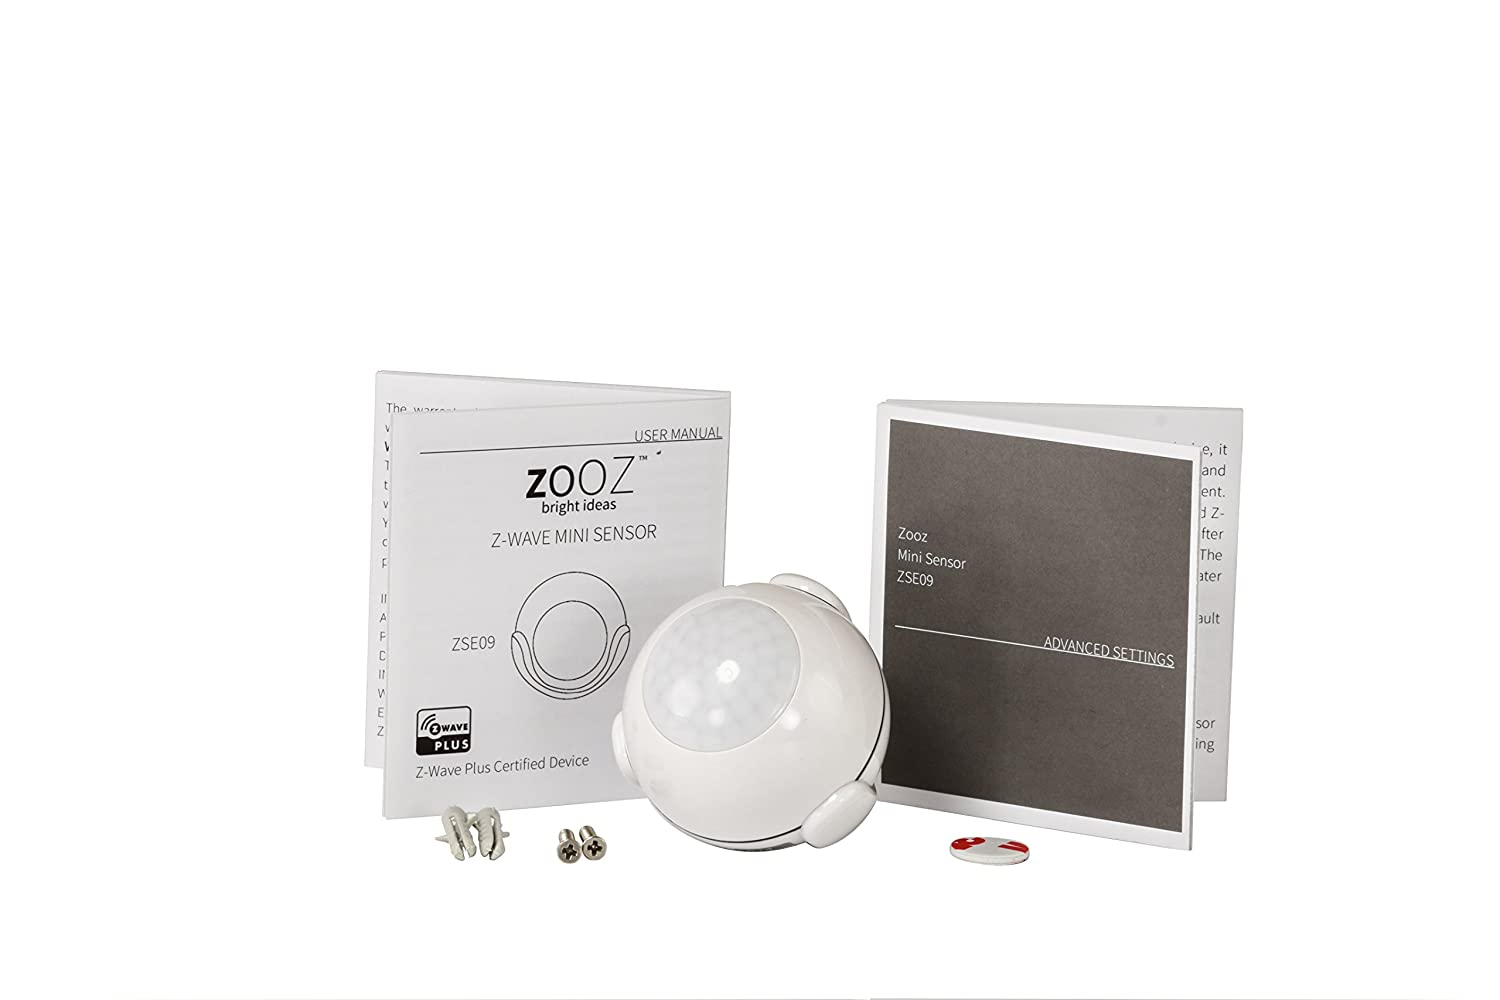 Amazon.com : Zooz Z-Wave Plus 2-in-1 Motion and Light Mini Sensor ZSE09, Cert. #ZC10-16085198 : Camera & Photo